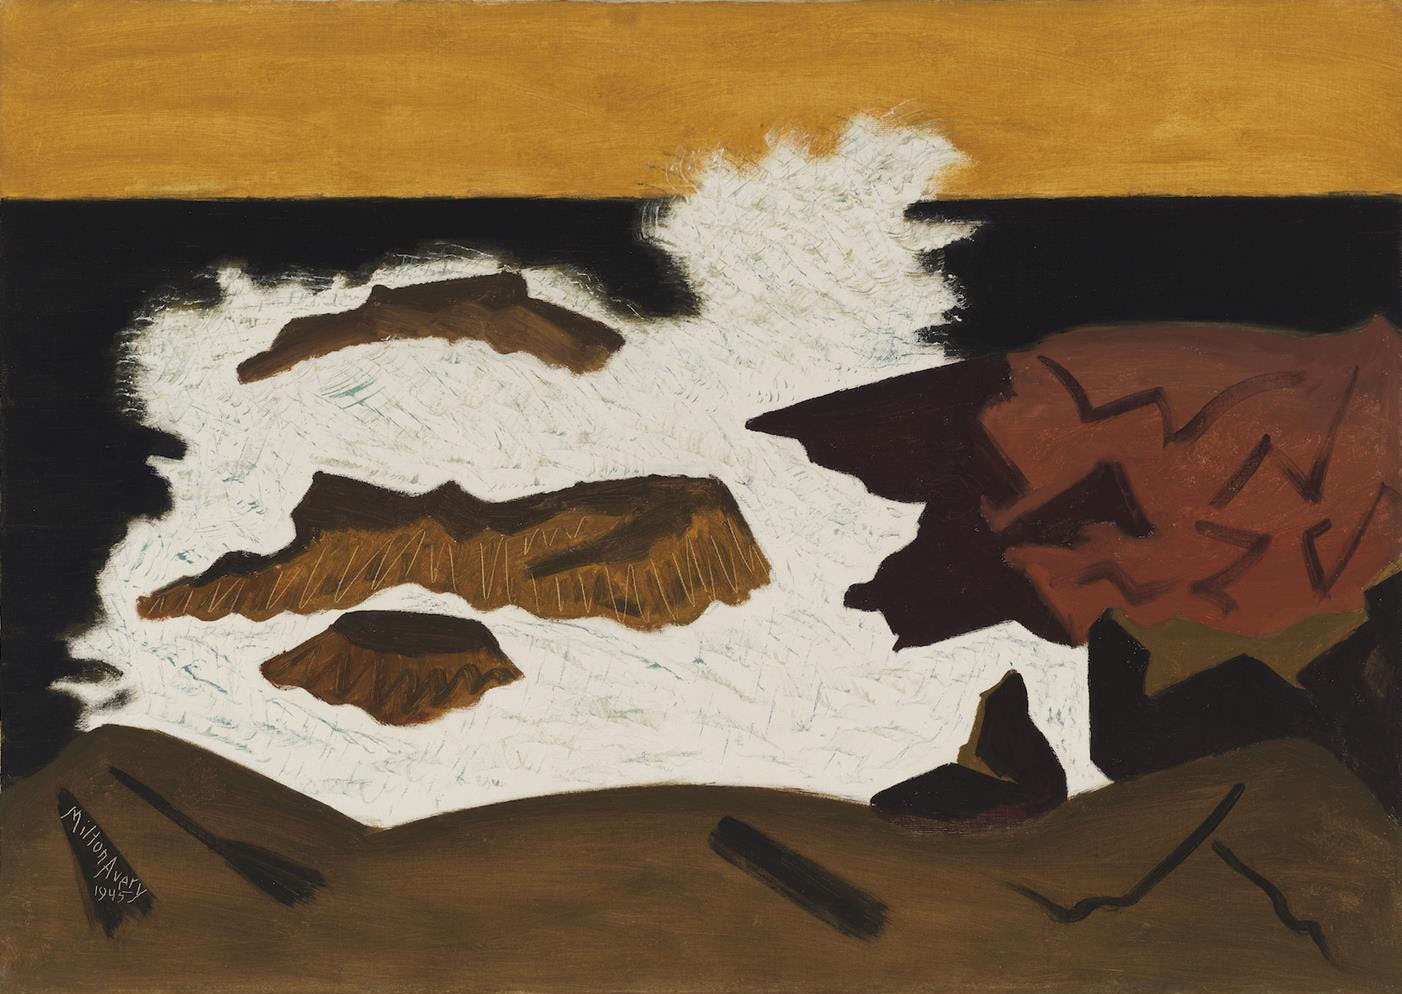 Milton Avery, Black Sea, 1945